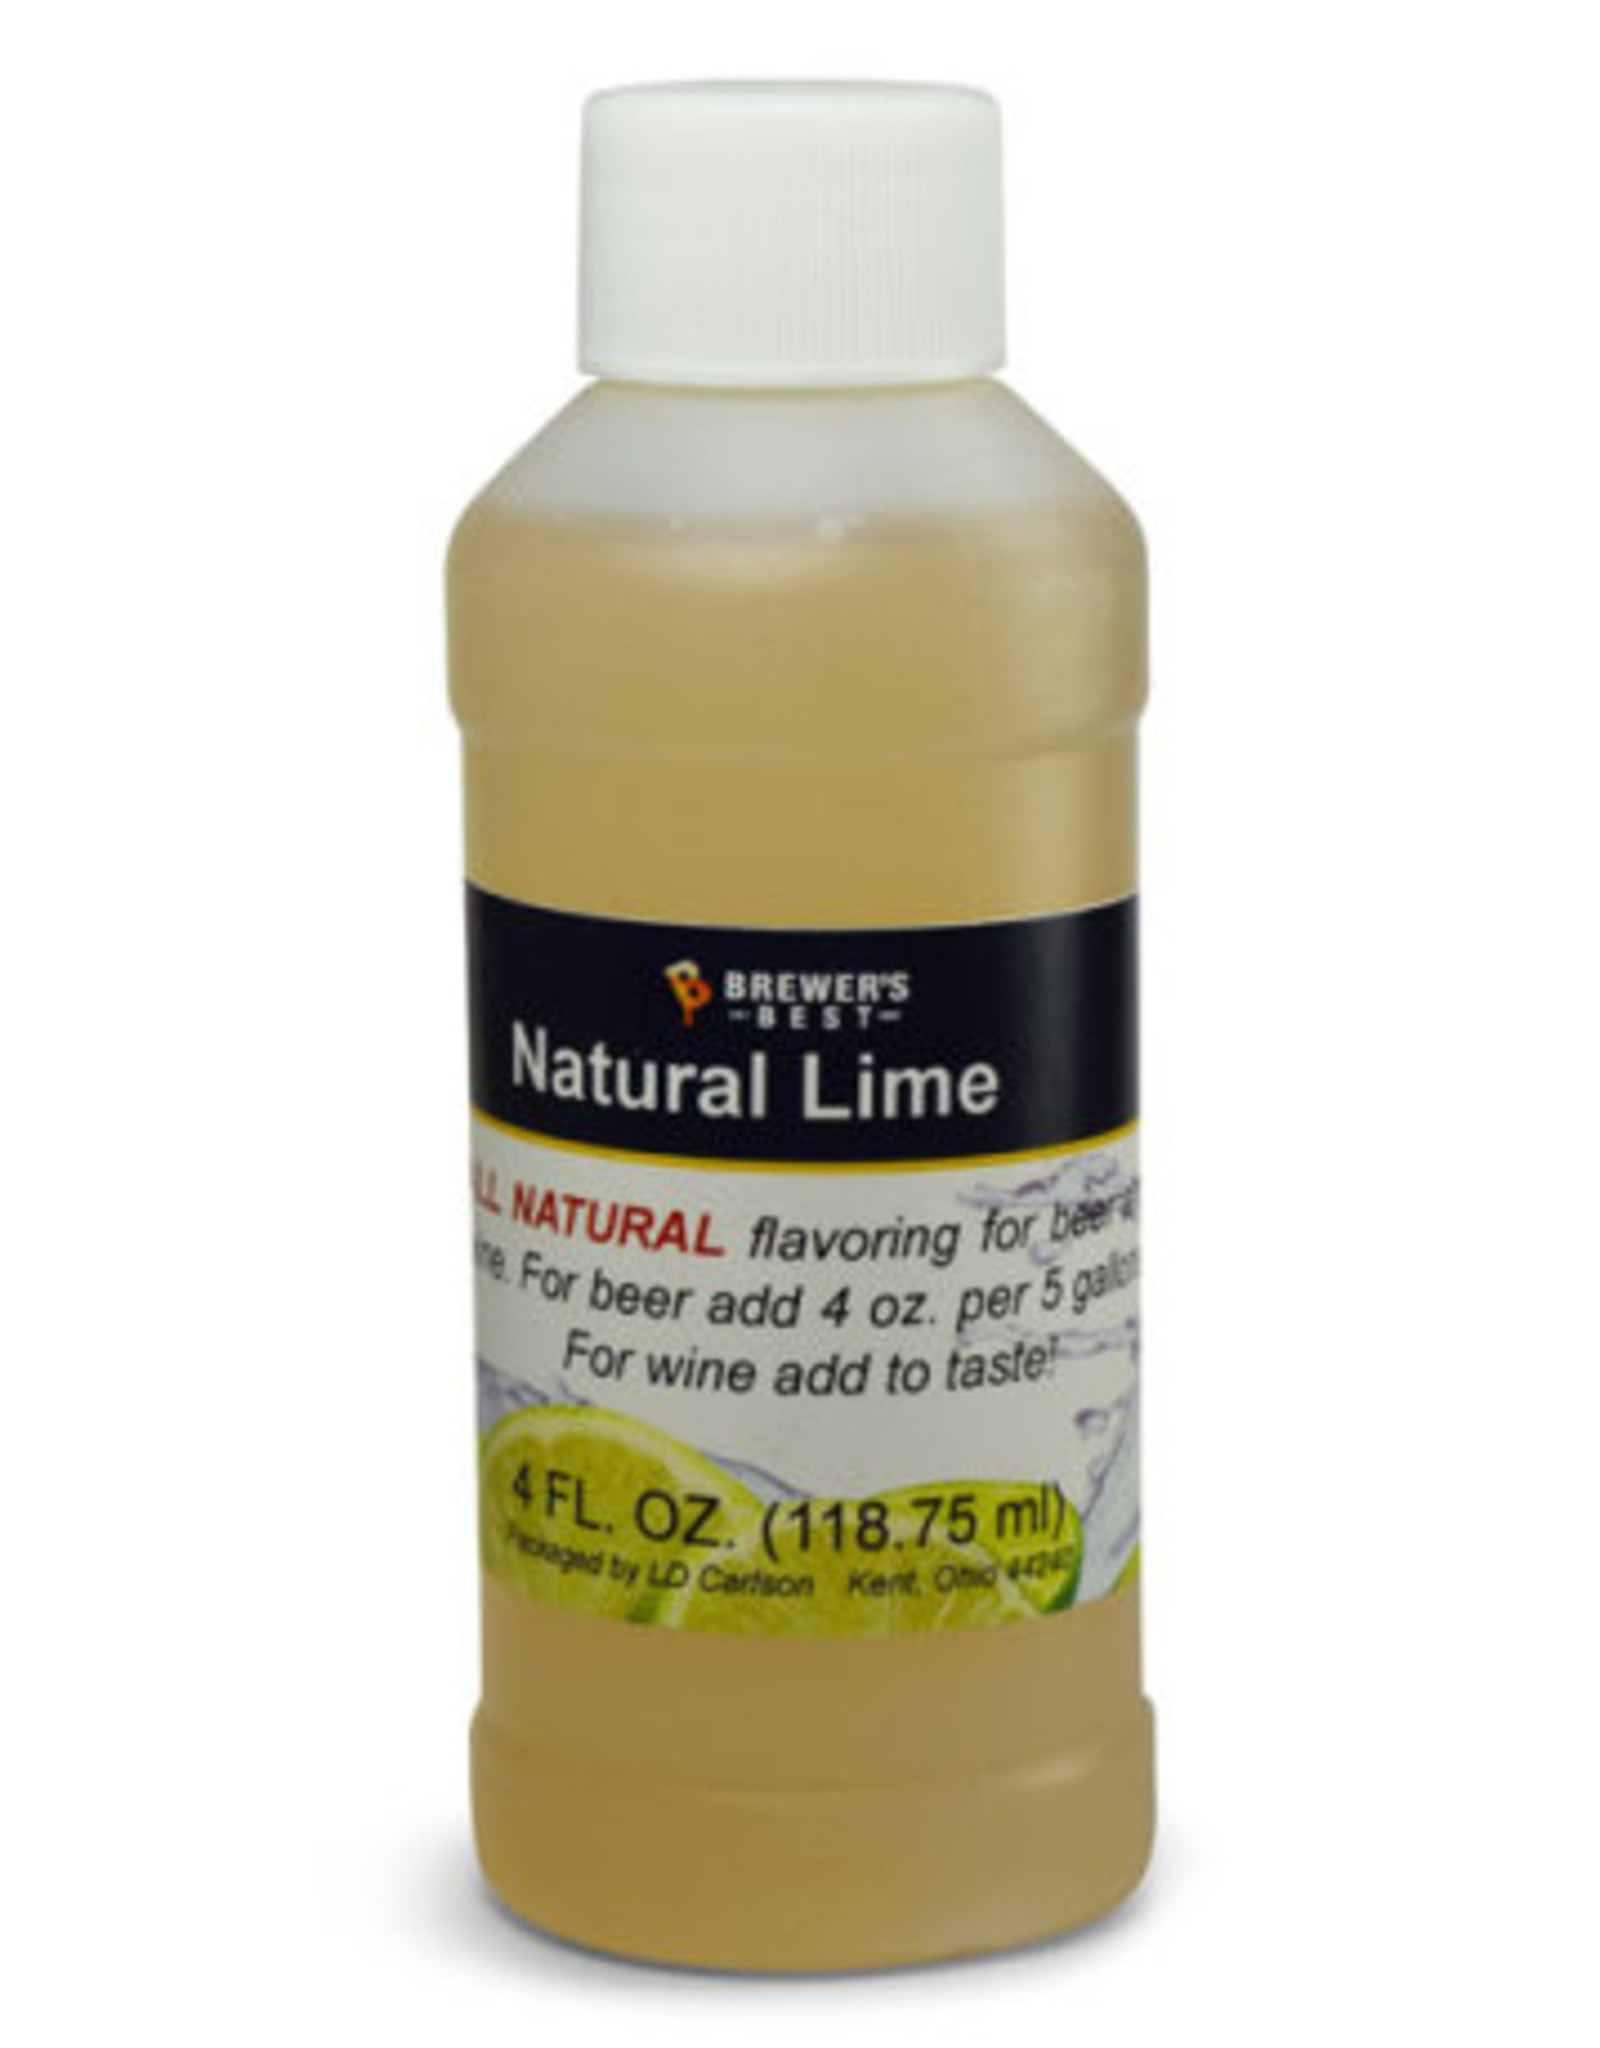 NATURAL LIME FLAVORING EXTRACT 4 OZ